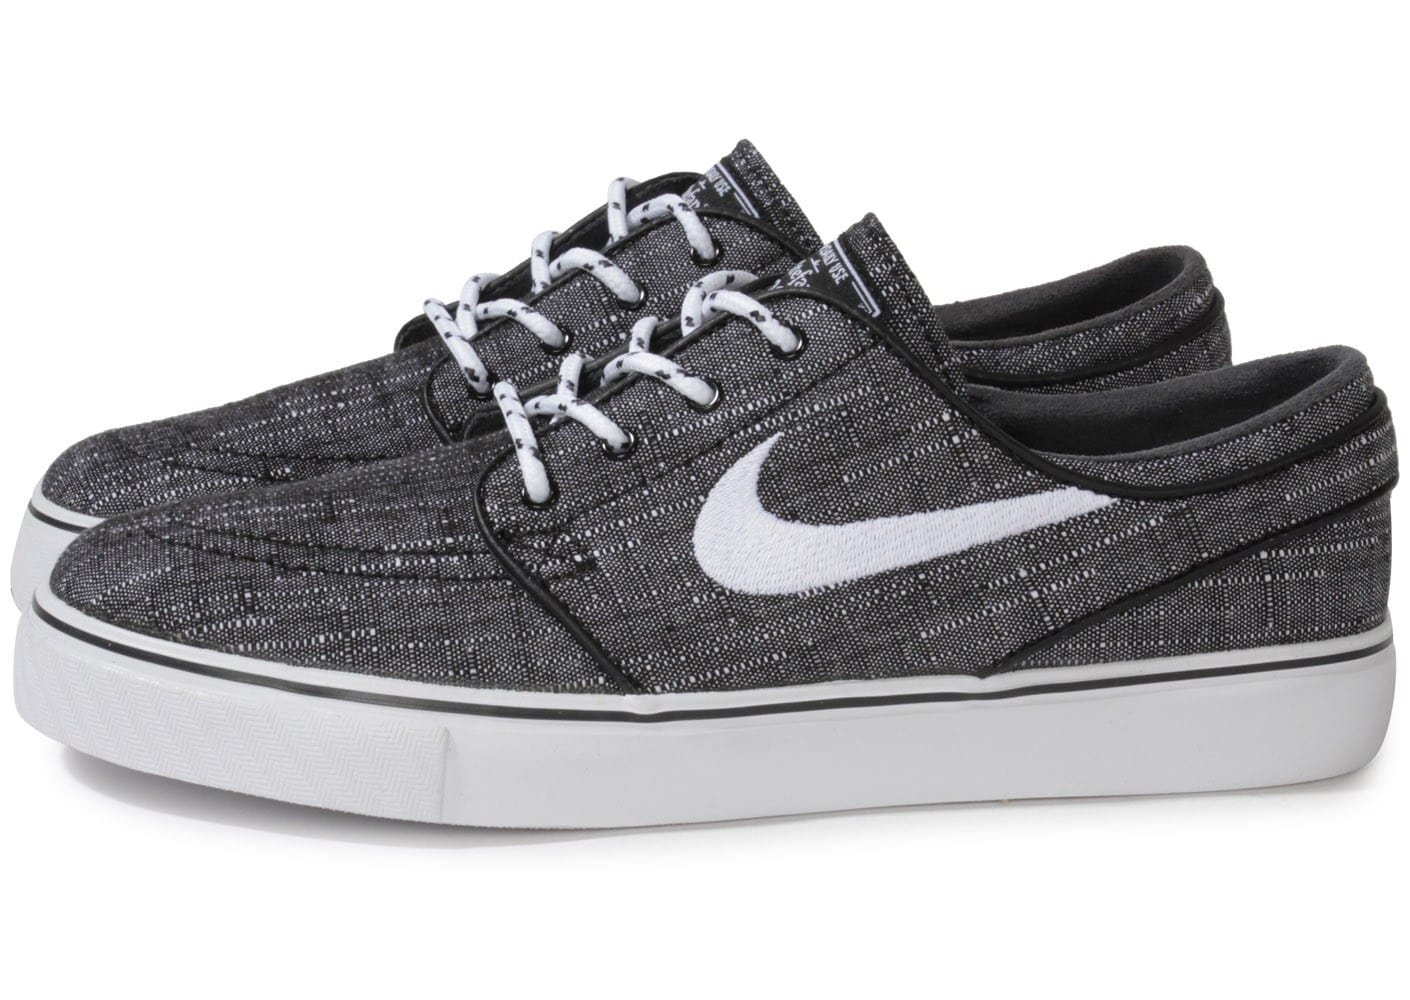 nike zoom stefan janoski canvas grise chaussures homme chausport. Black Bedroom Furniture Sets. Home Design Ideas